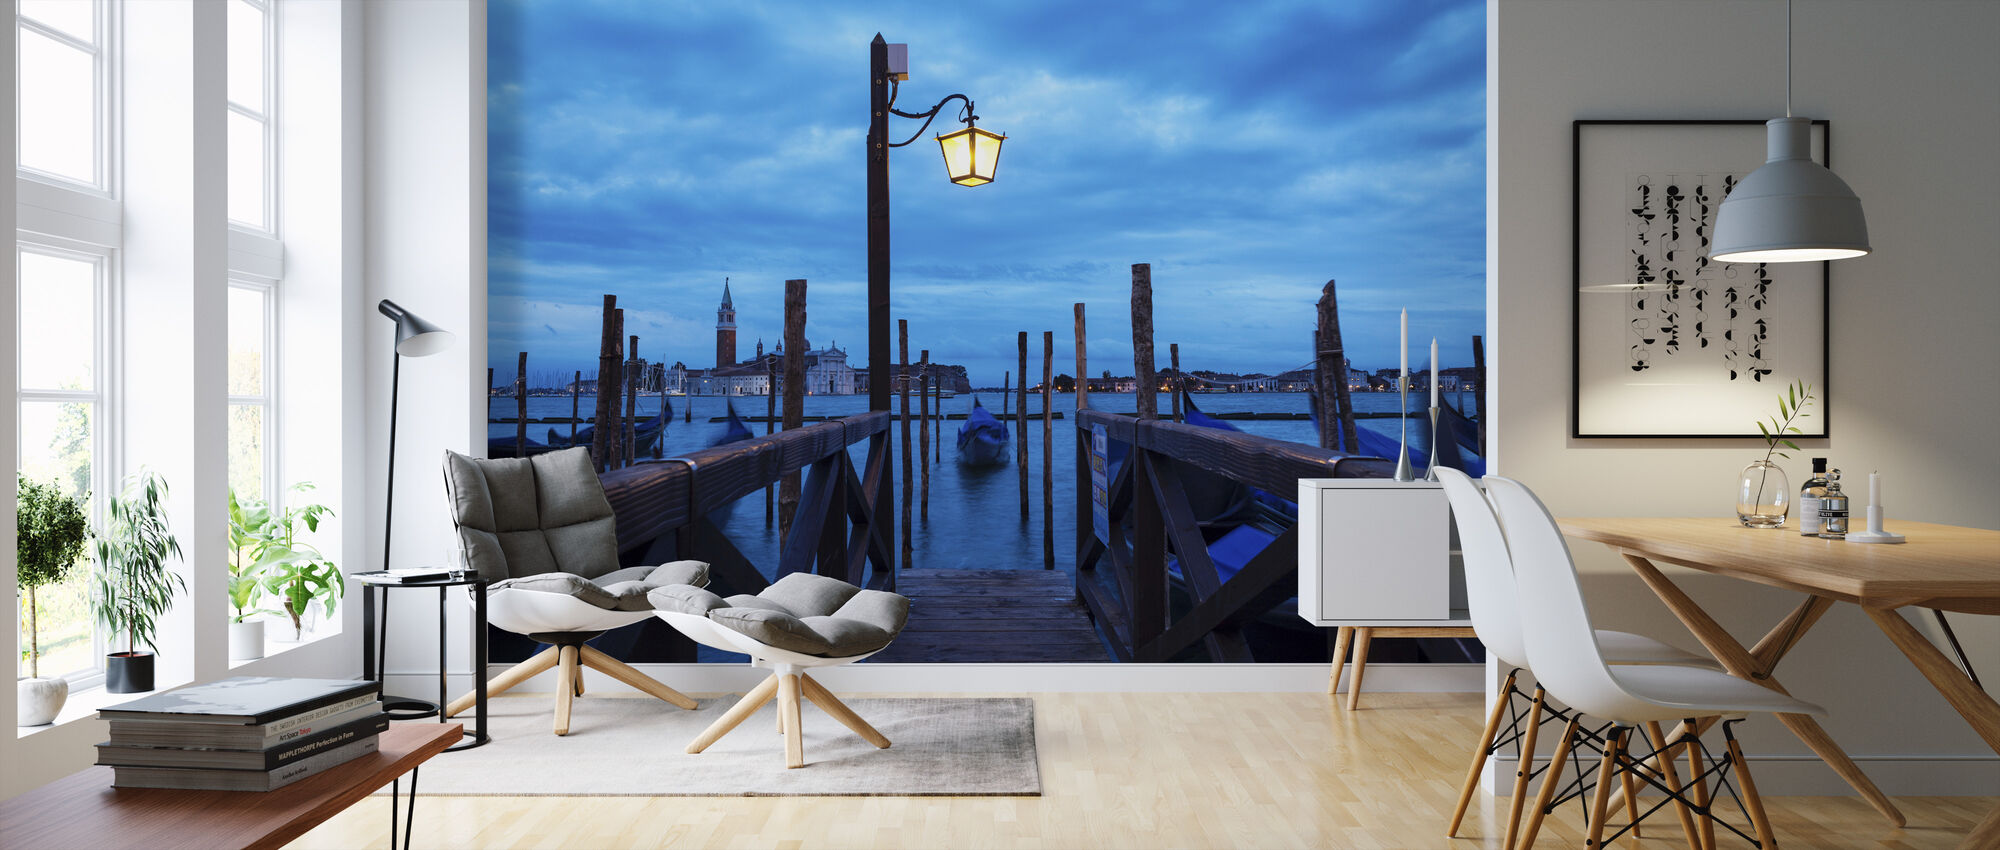 Venice Italy Pier - Wallpaper - Living Room